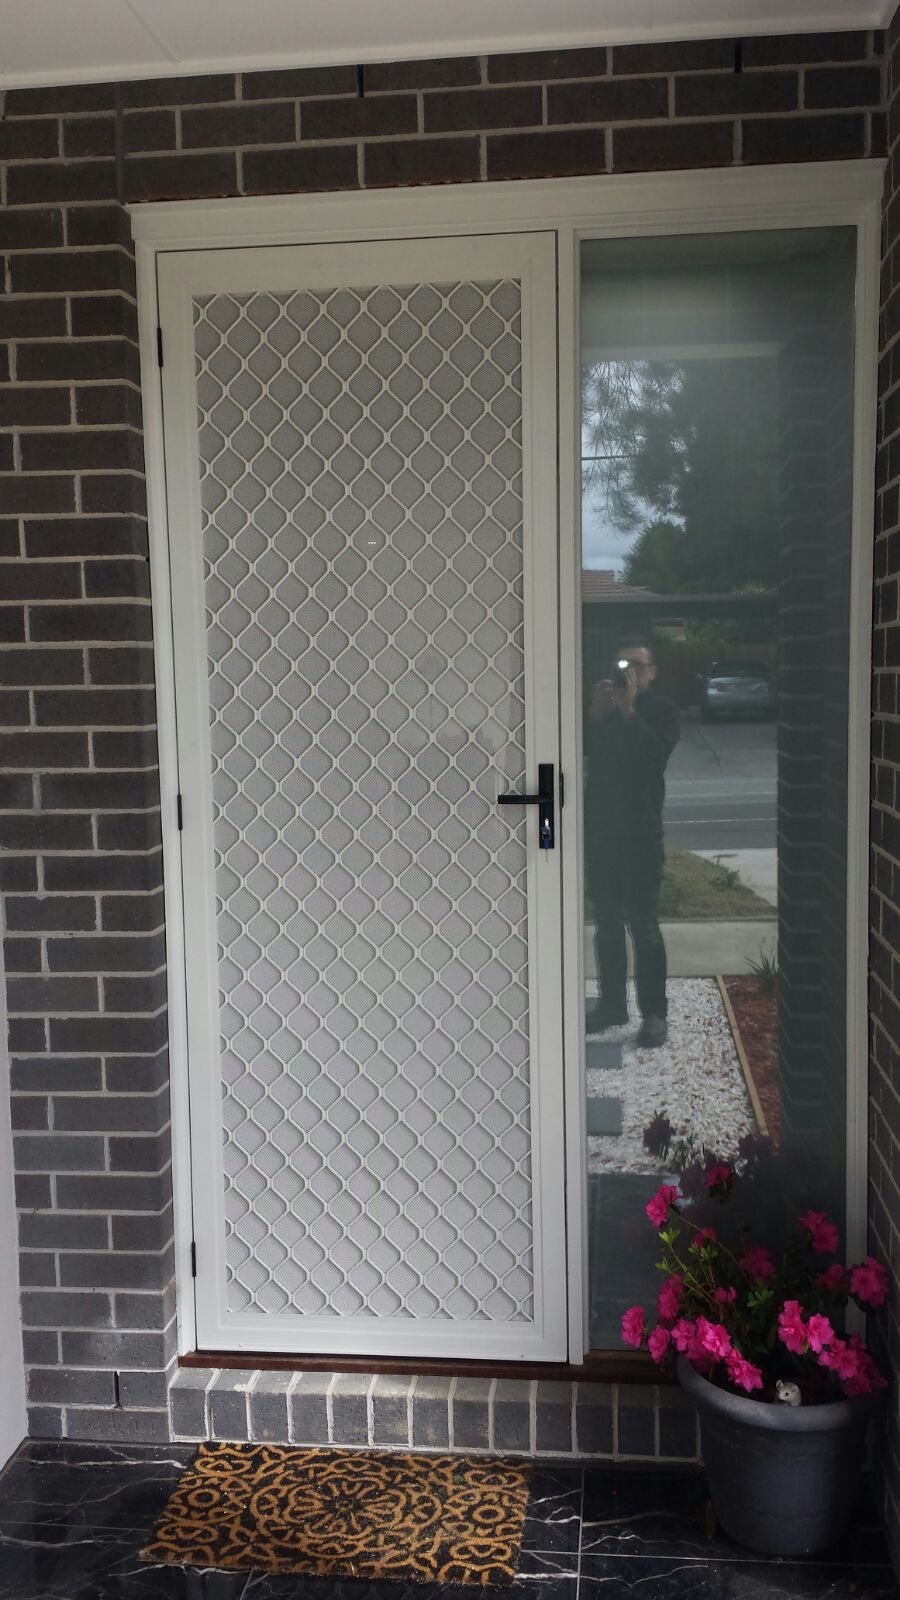 Aluminium Frame Security Door With Diamond Design Security Grille And One Way Vision Dva Mesh Plus Triple Locks I Aluminium Doors Aluminium Door Design Doors